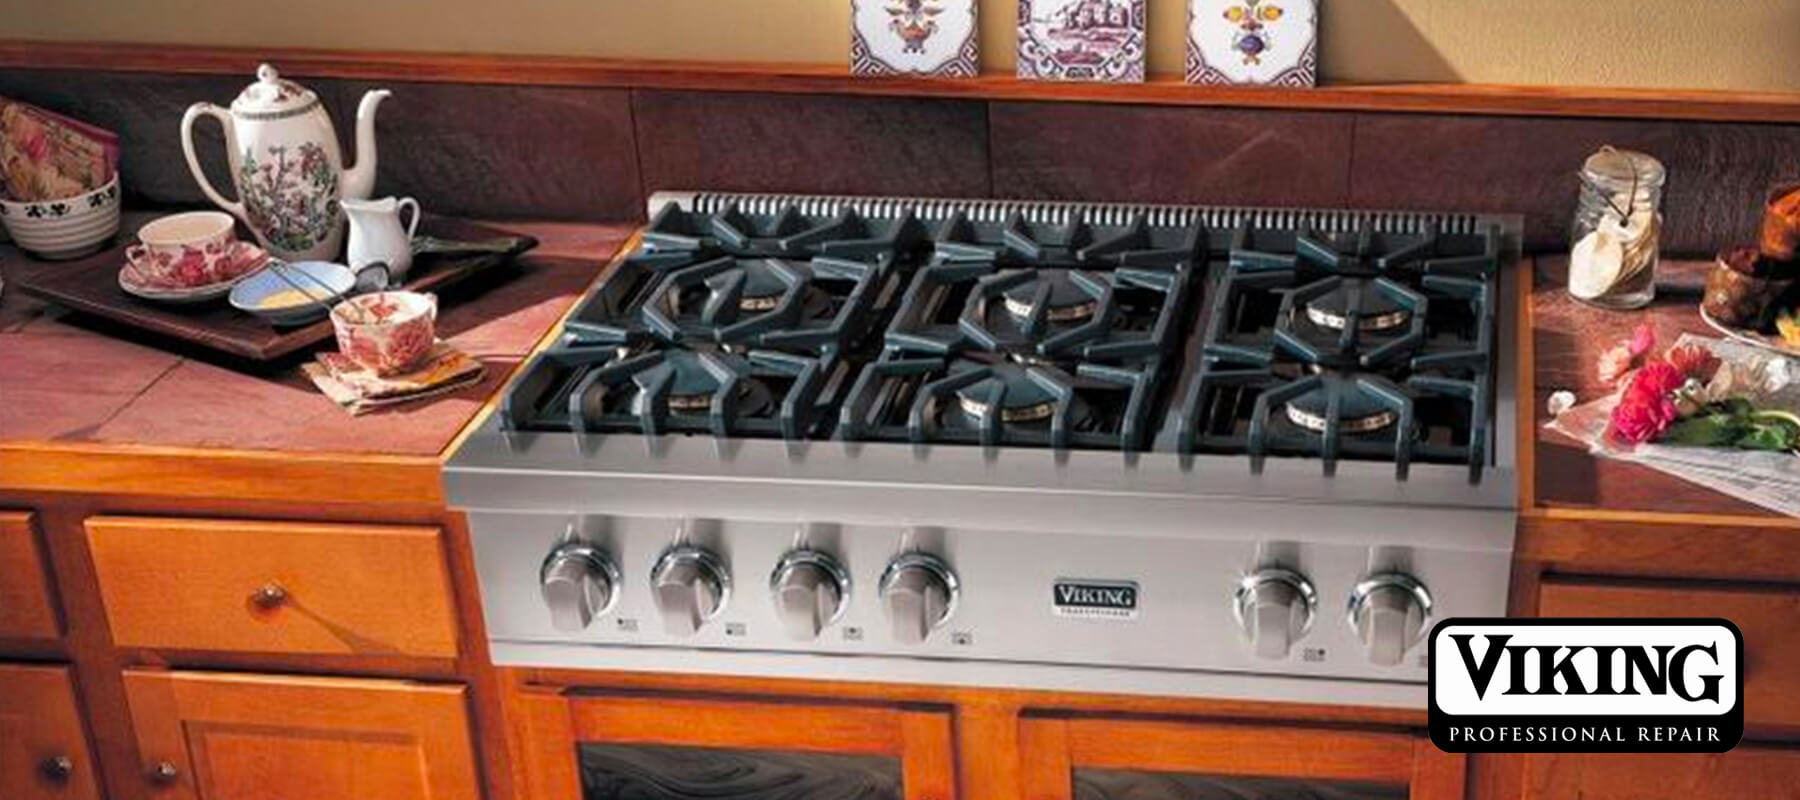 Viking Range Repair Service | Professional Viking Repair